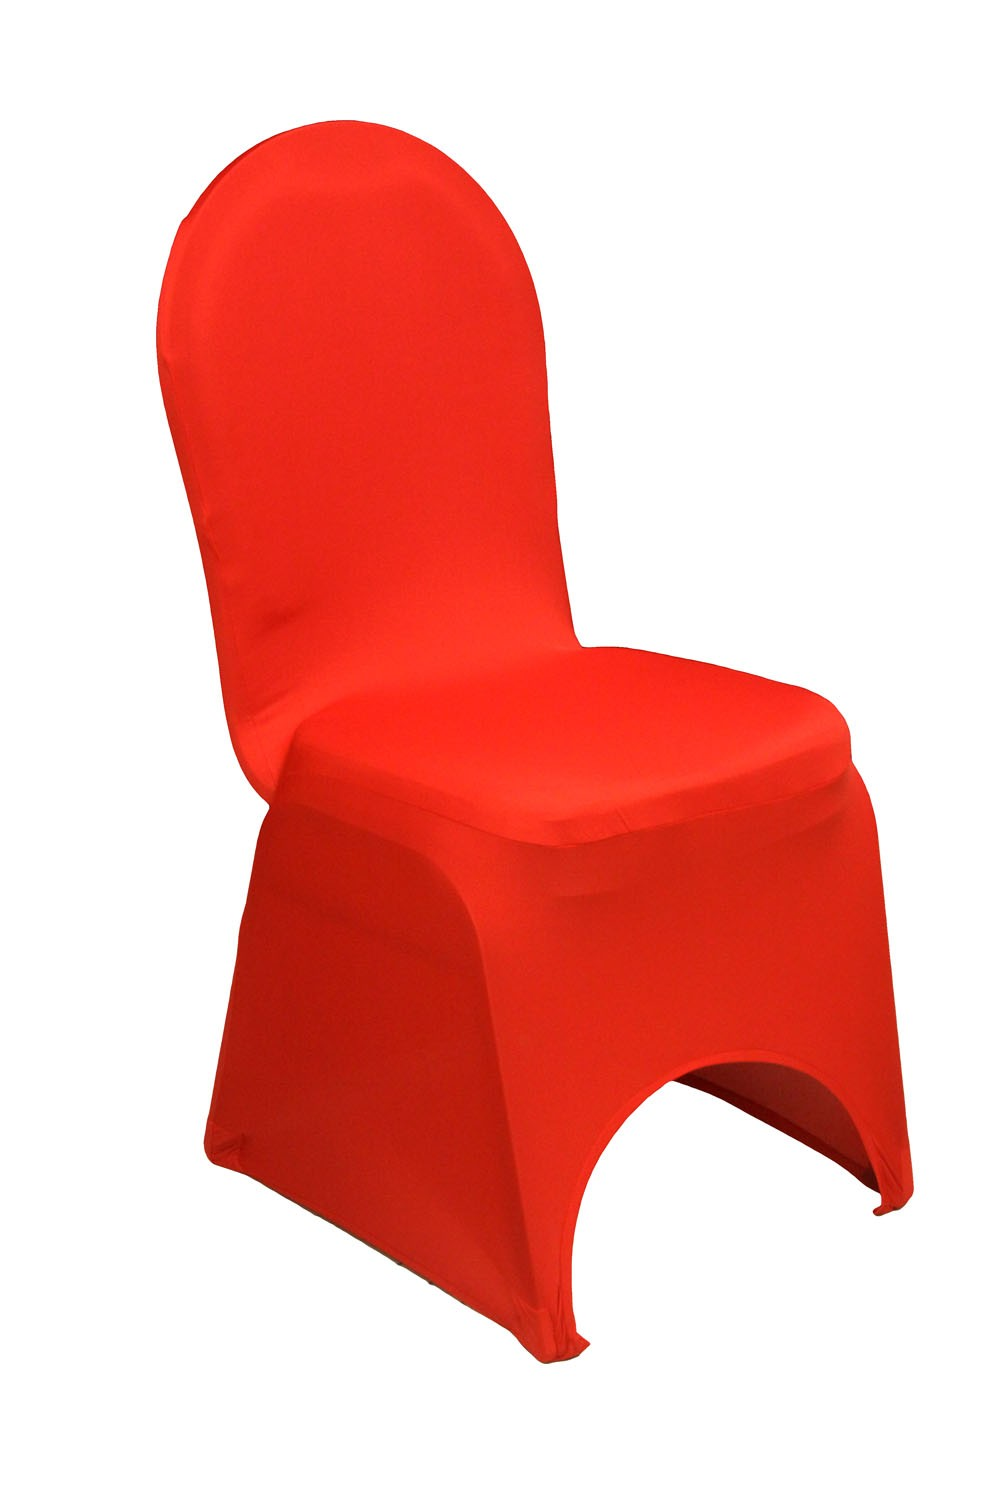 Spandex Chair Covers rentals RED